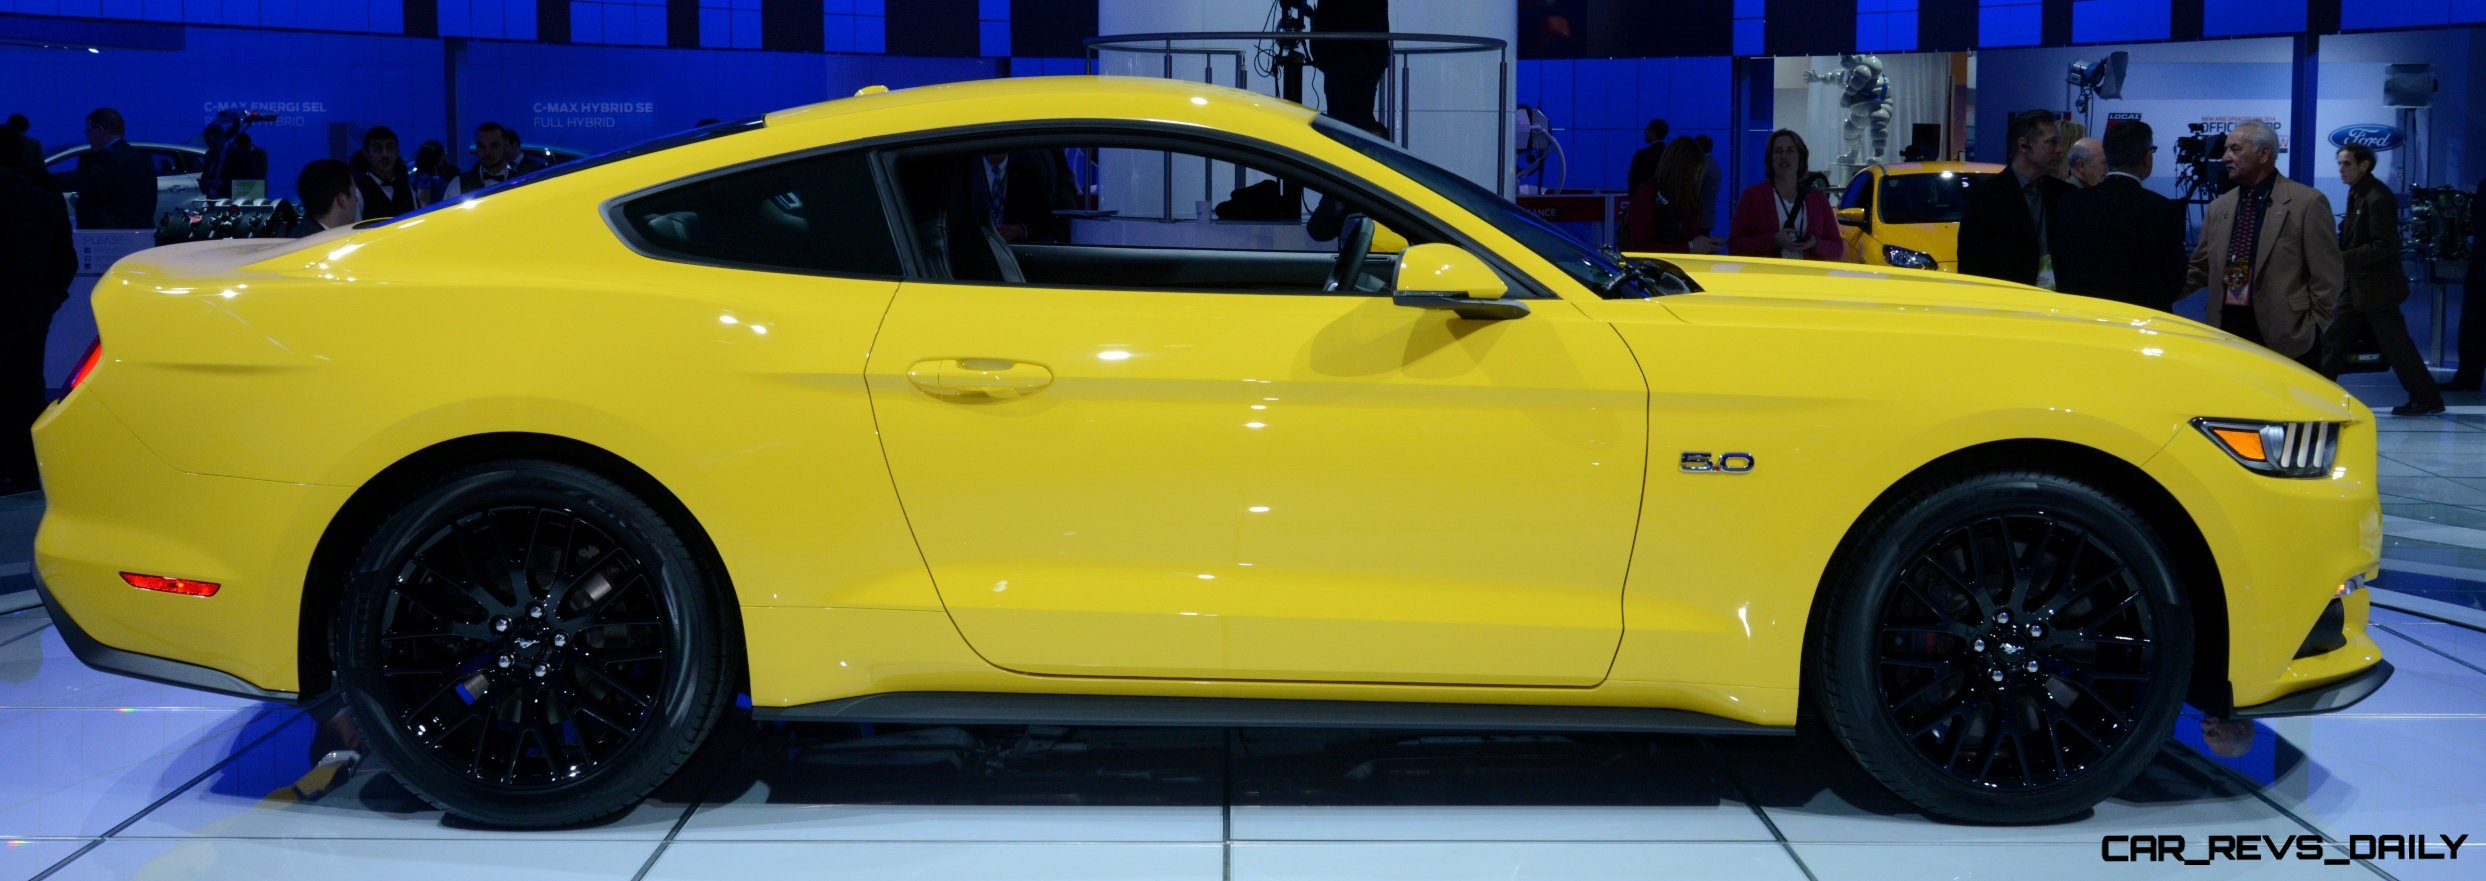 2015 Ford Mustang GT Mean Lean and Ready To Brawl in Latest Real Life Photos Yellow GT 17 photo